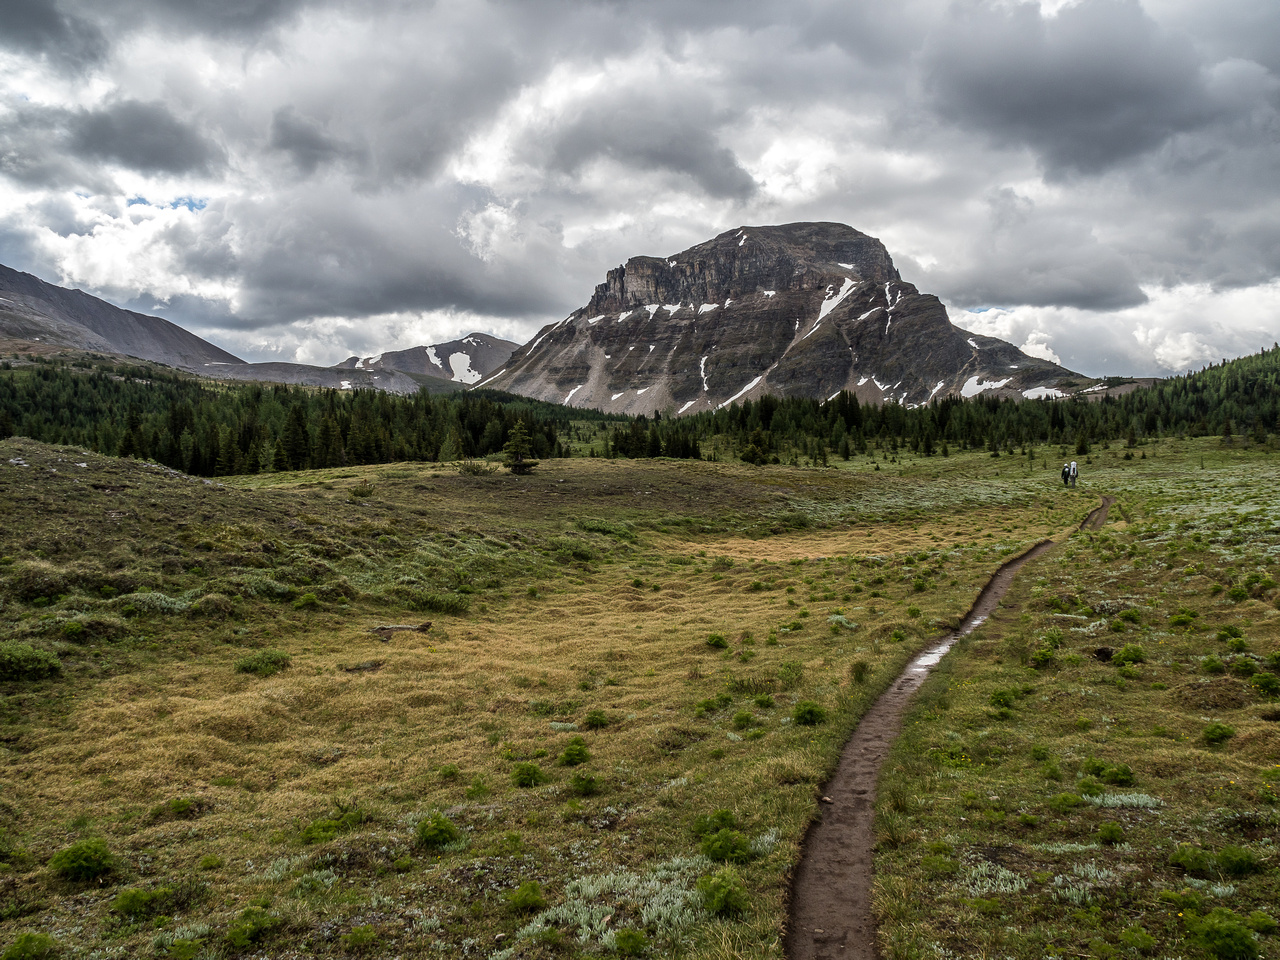 A moody hike towards Citadel Pass and Peak.